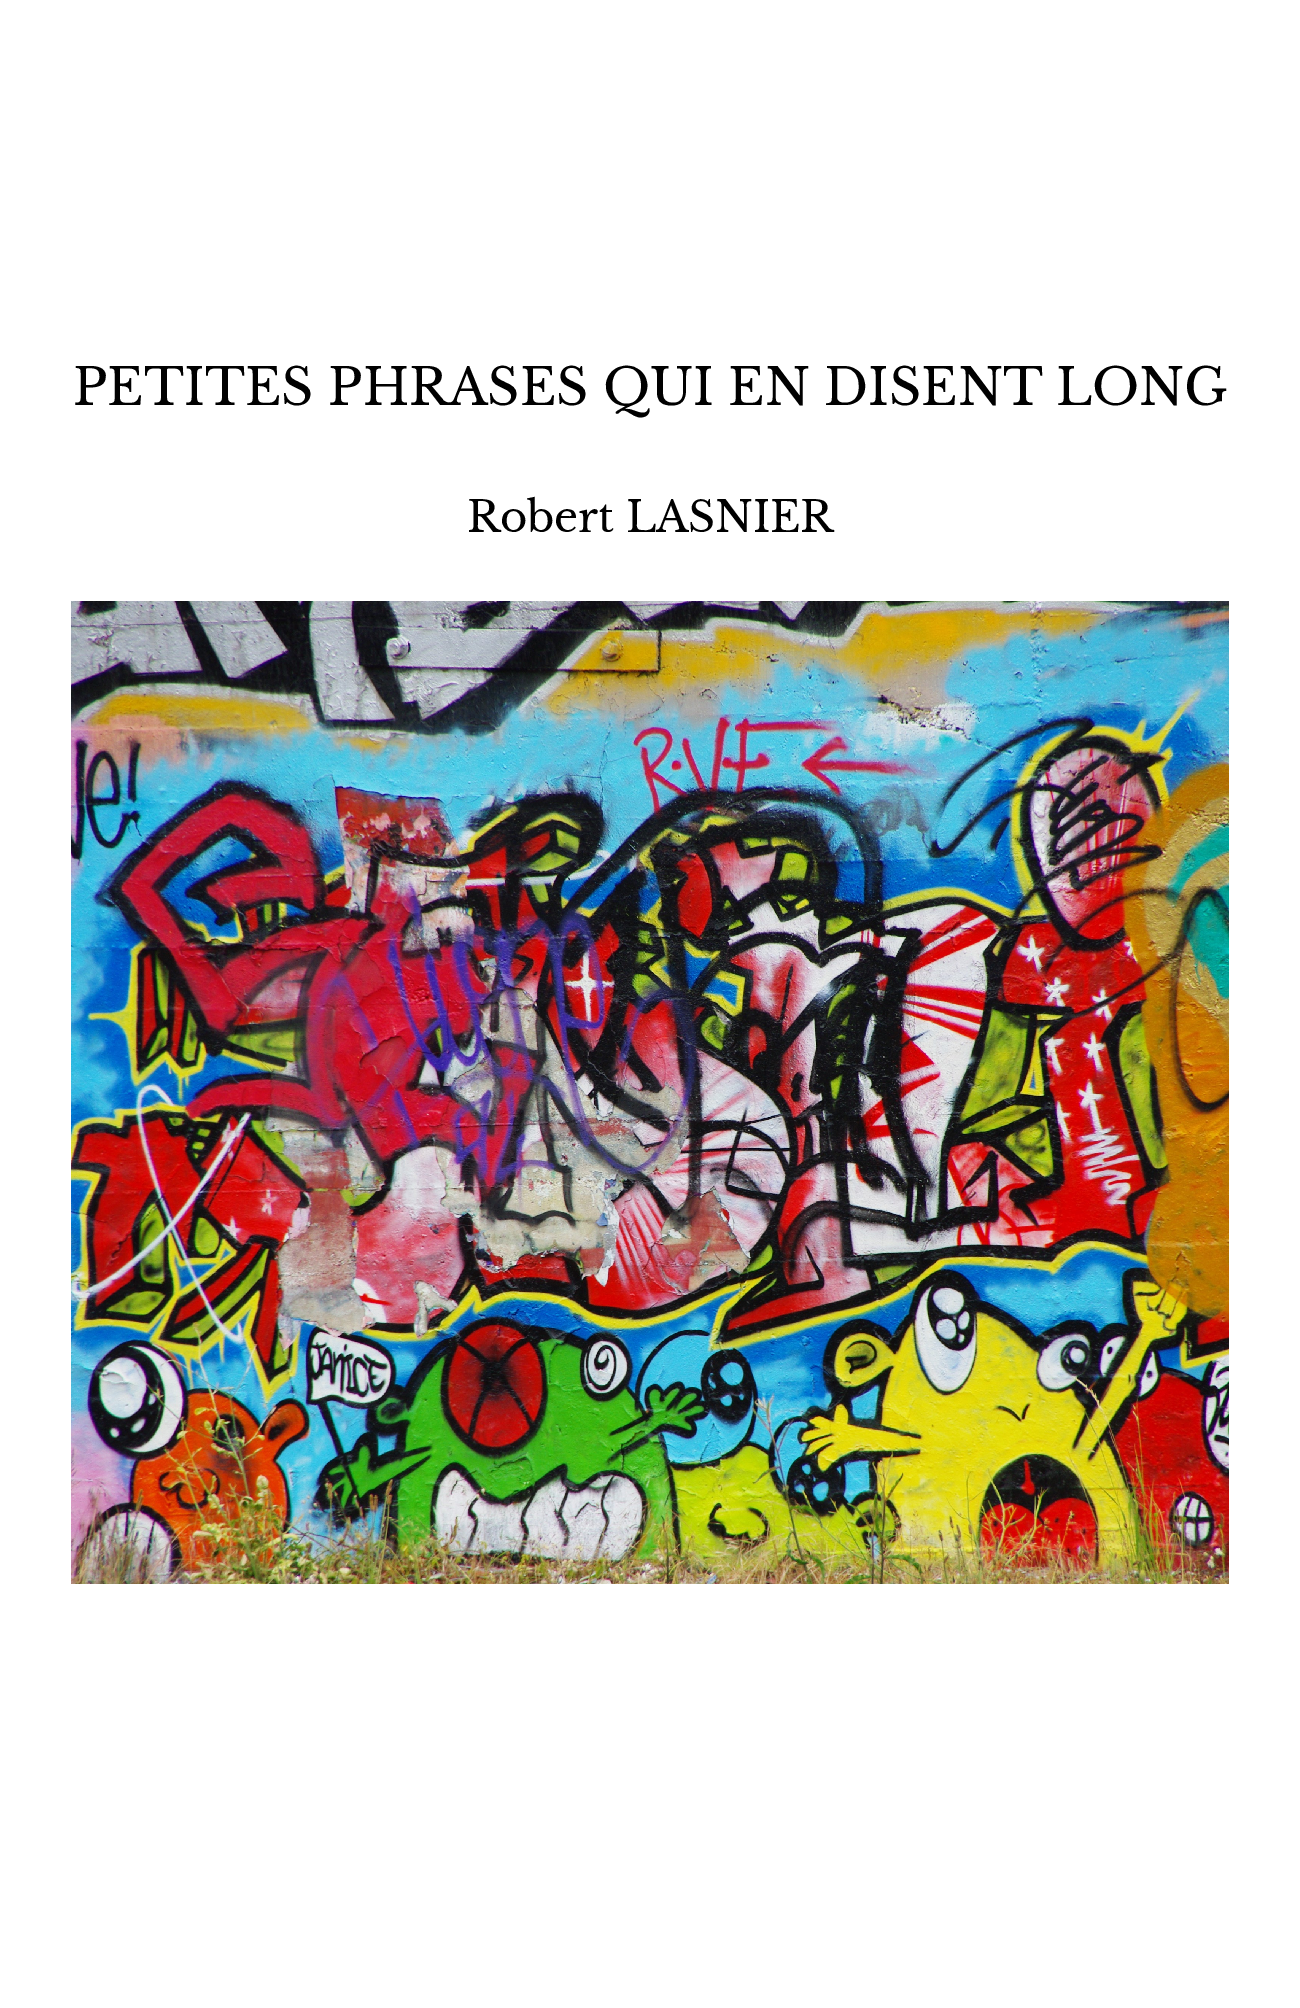 PETITES PHRASES QUI EN DISENT LONG